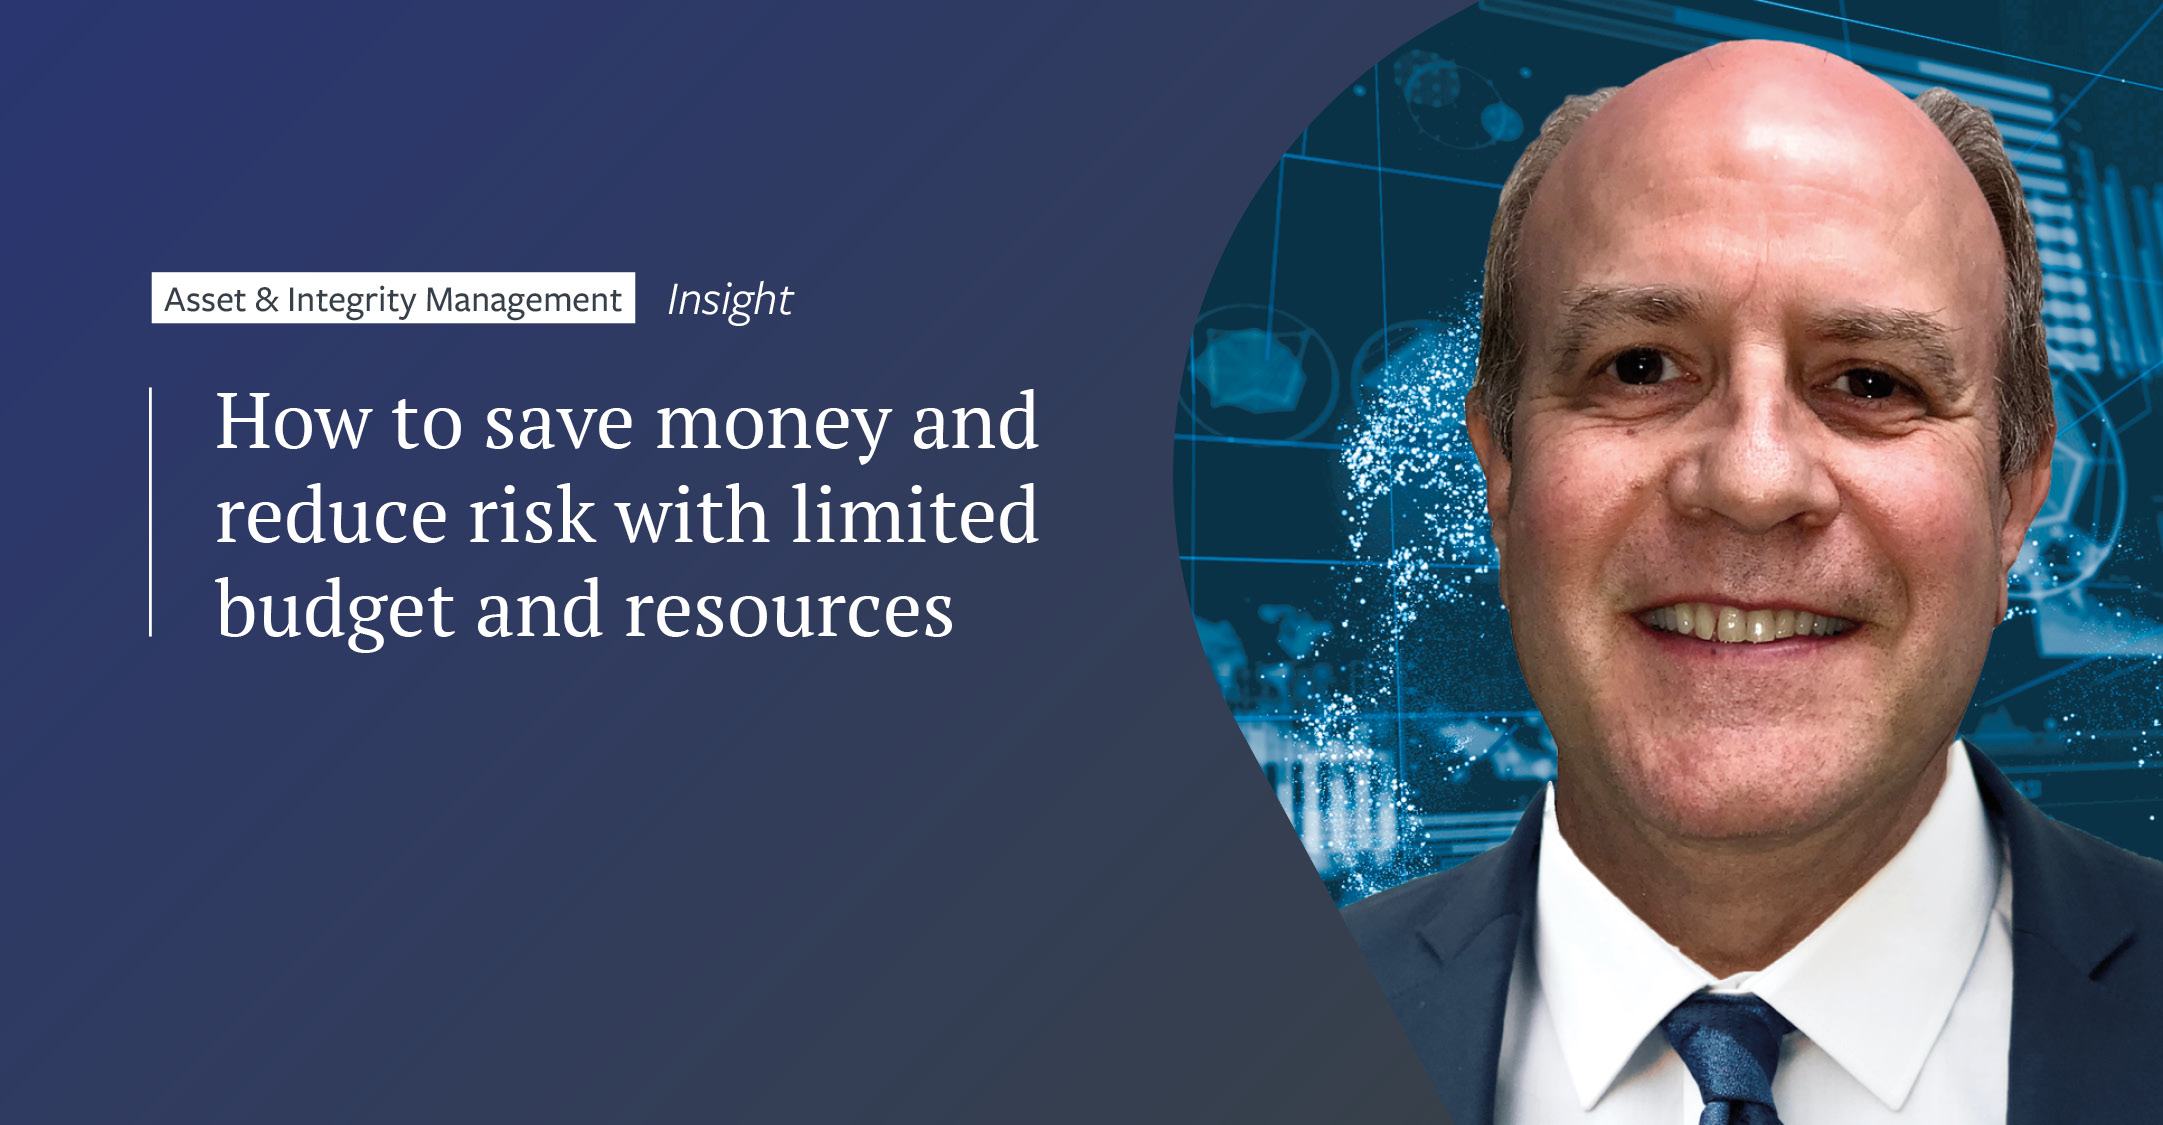 How to save money and reduce risk with limited budget and resources